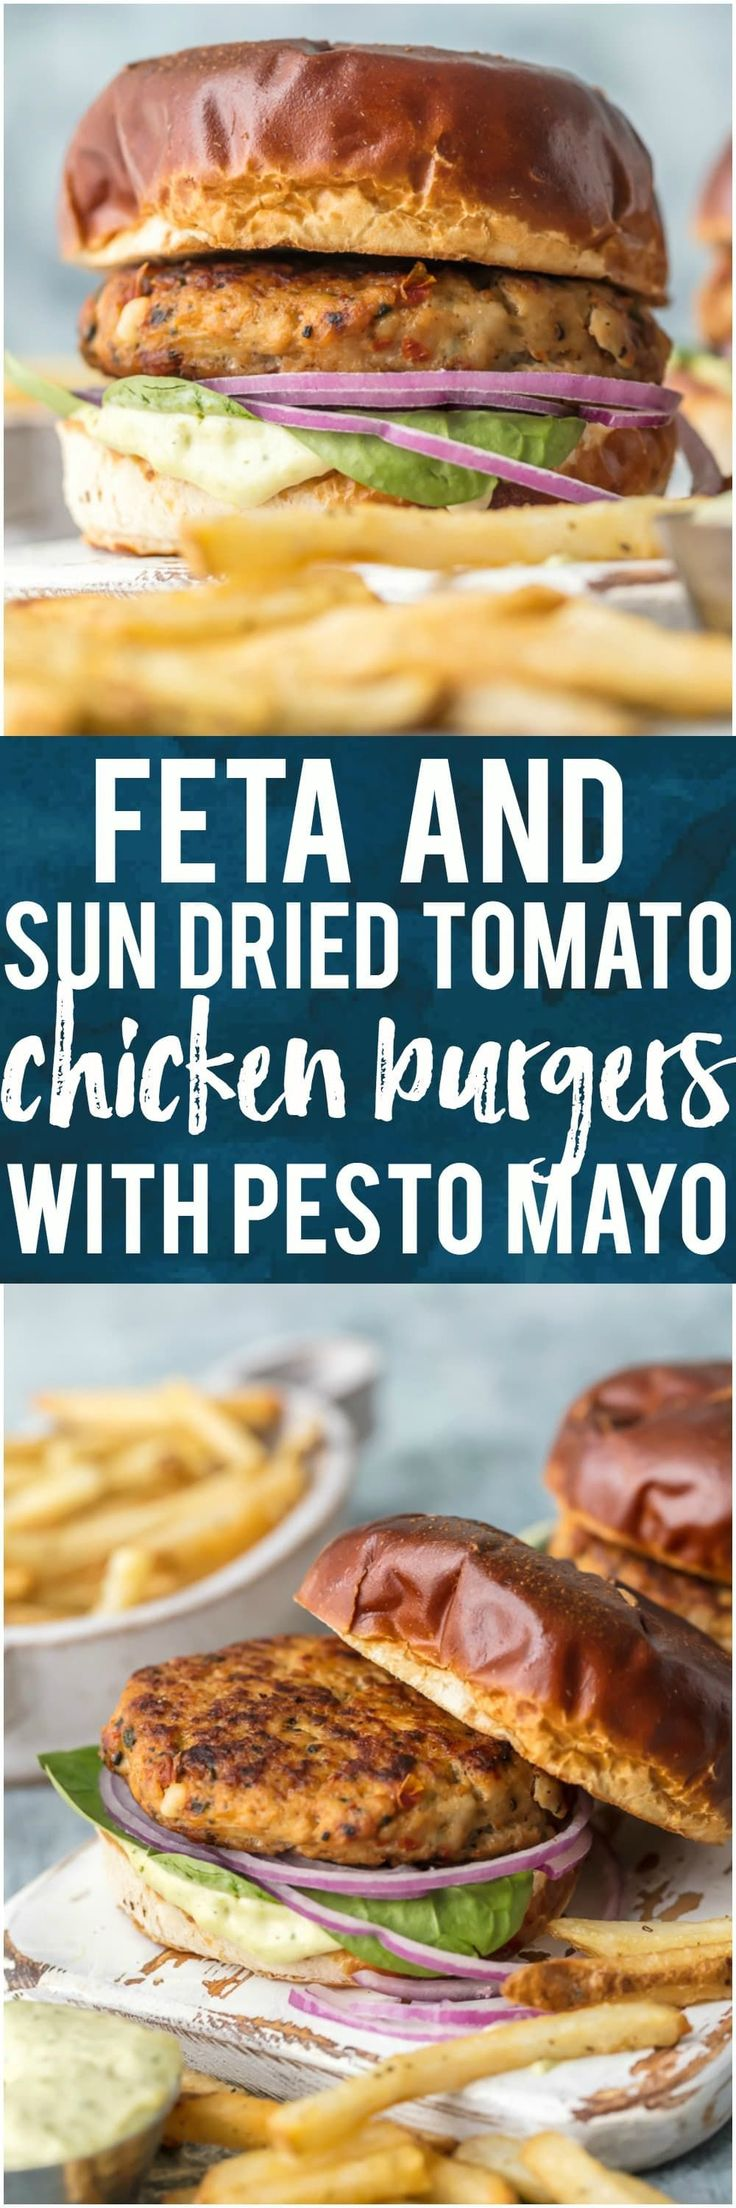 I'm living for these FETA AND SUN DRIED TOMATO CHICKEN BURGERS! Make them by grilling on the stovetop or outdoors once the weather cooperates for the ultimate good for you comfort food. The flavor combo on these sandwiches is out of this world, especially